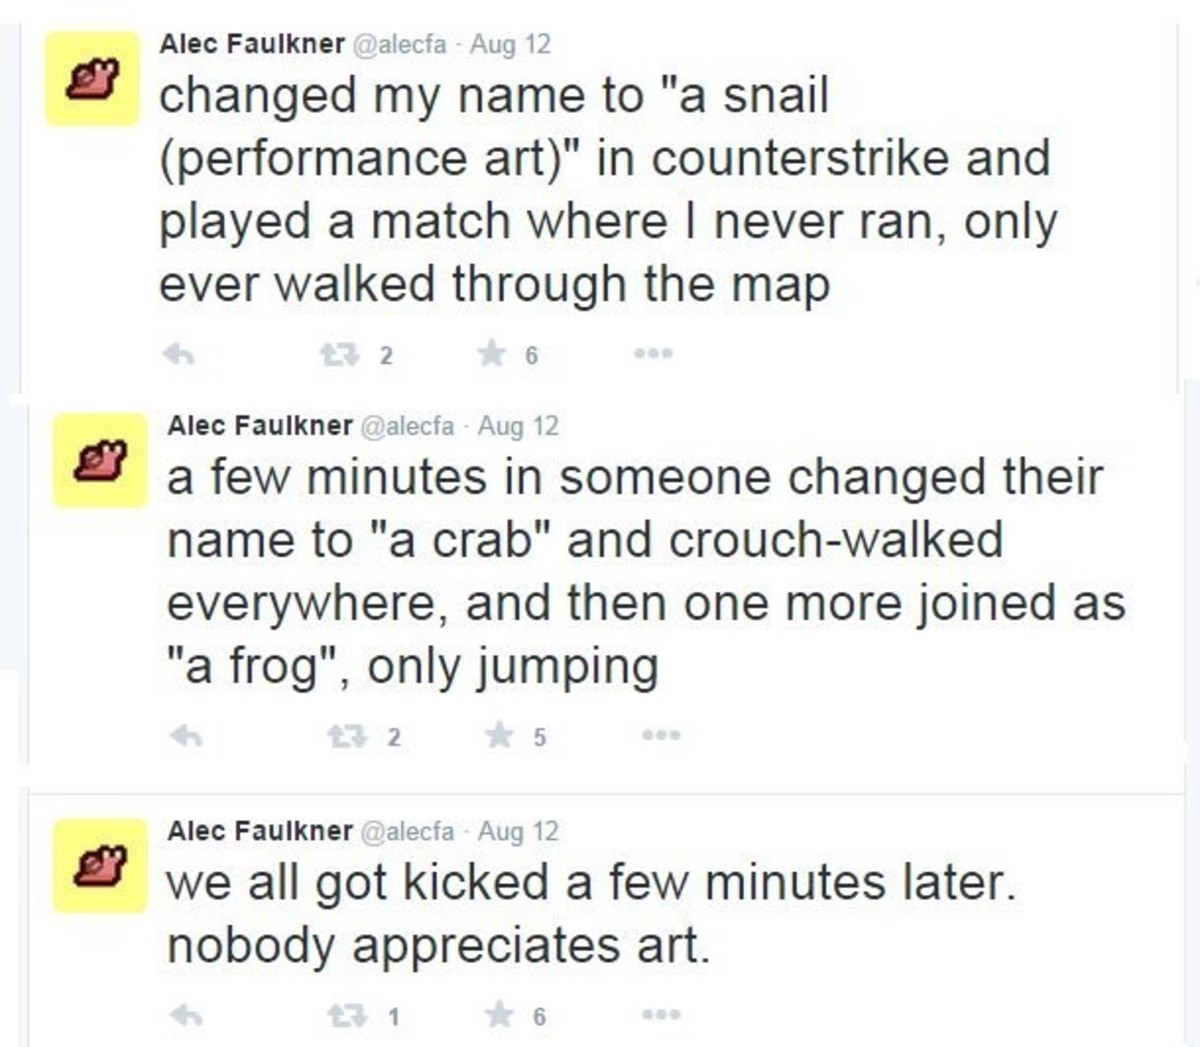 nervous efficient Frog. .. There's 5 people in competitive team, if the 3 of your are doing dumb you cannot be kicked. Unless he's talking about casual If so, then casualComment edited at